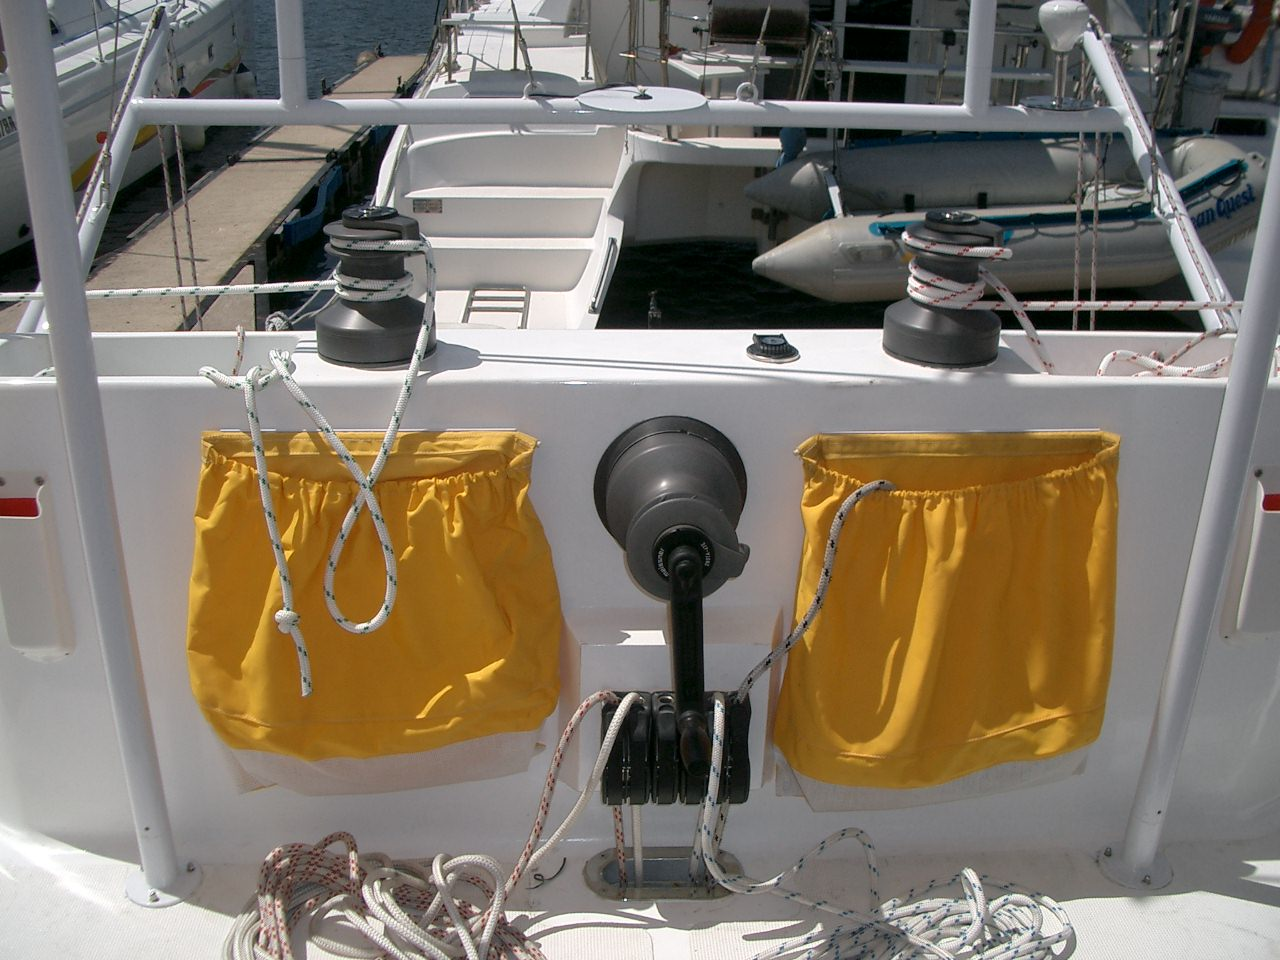 Click image for larger version  Name:Copy of boat2sailing 002.jpg Views:243 Size:232.6 KB ID:3928